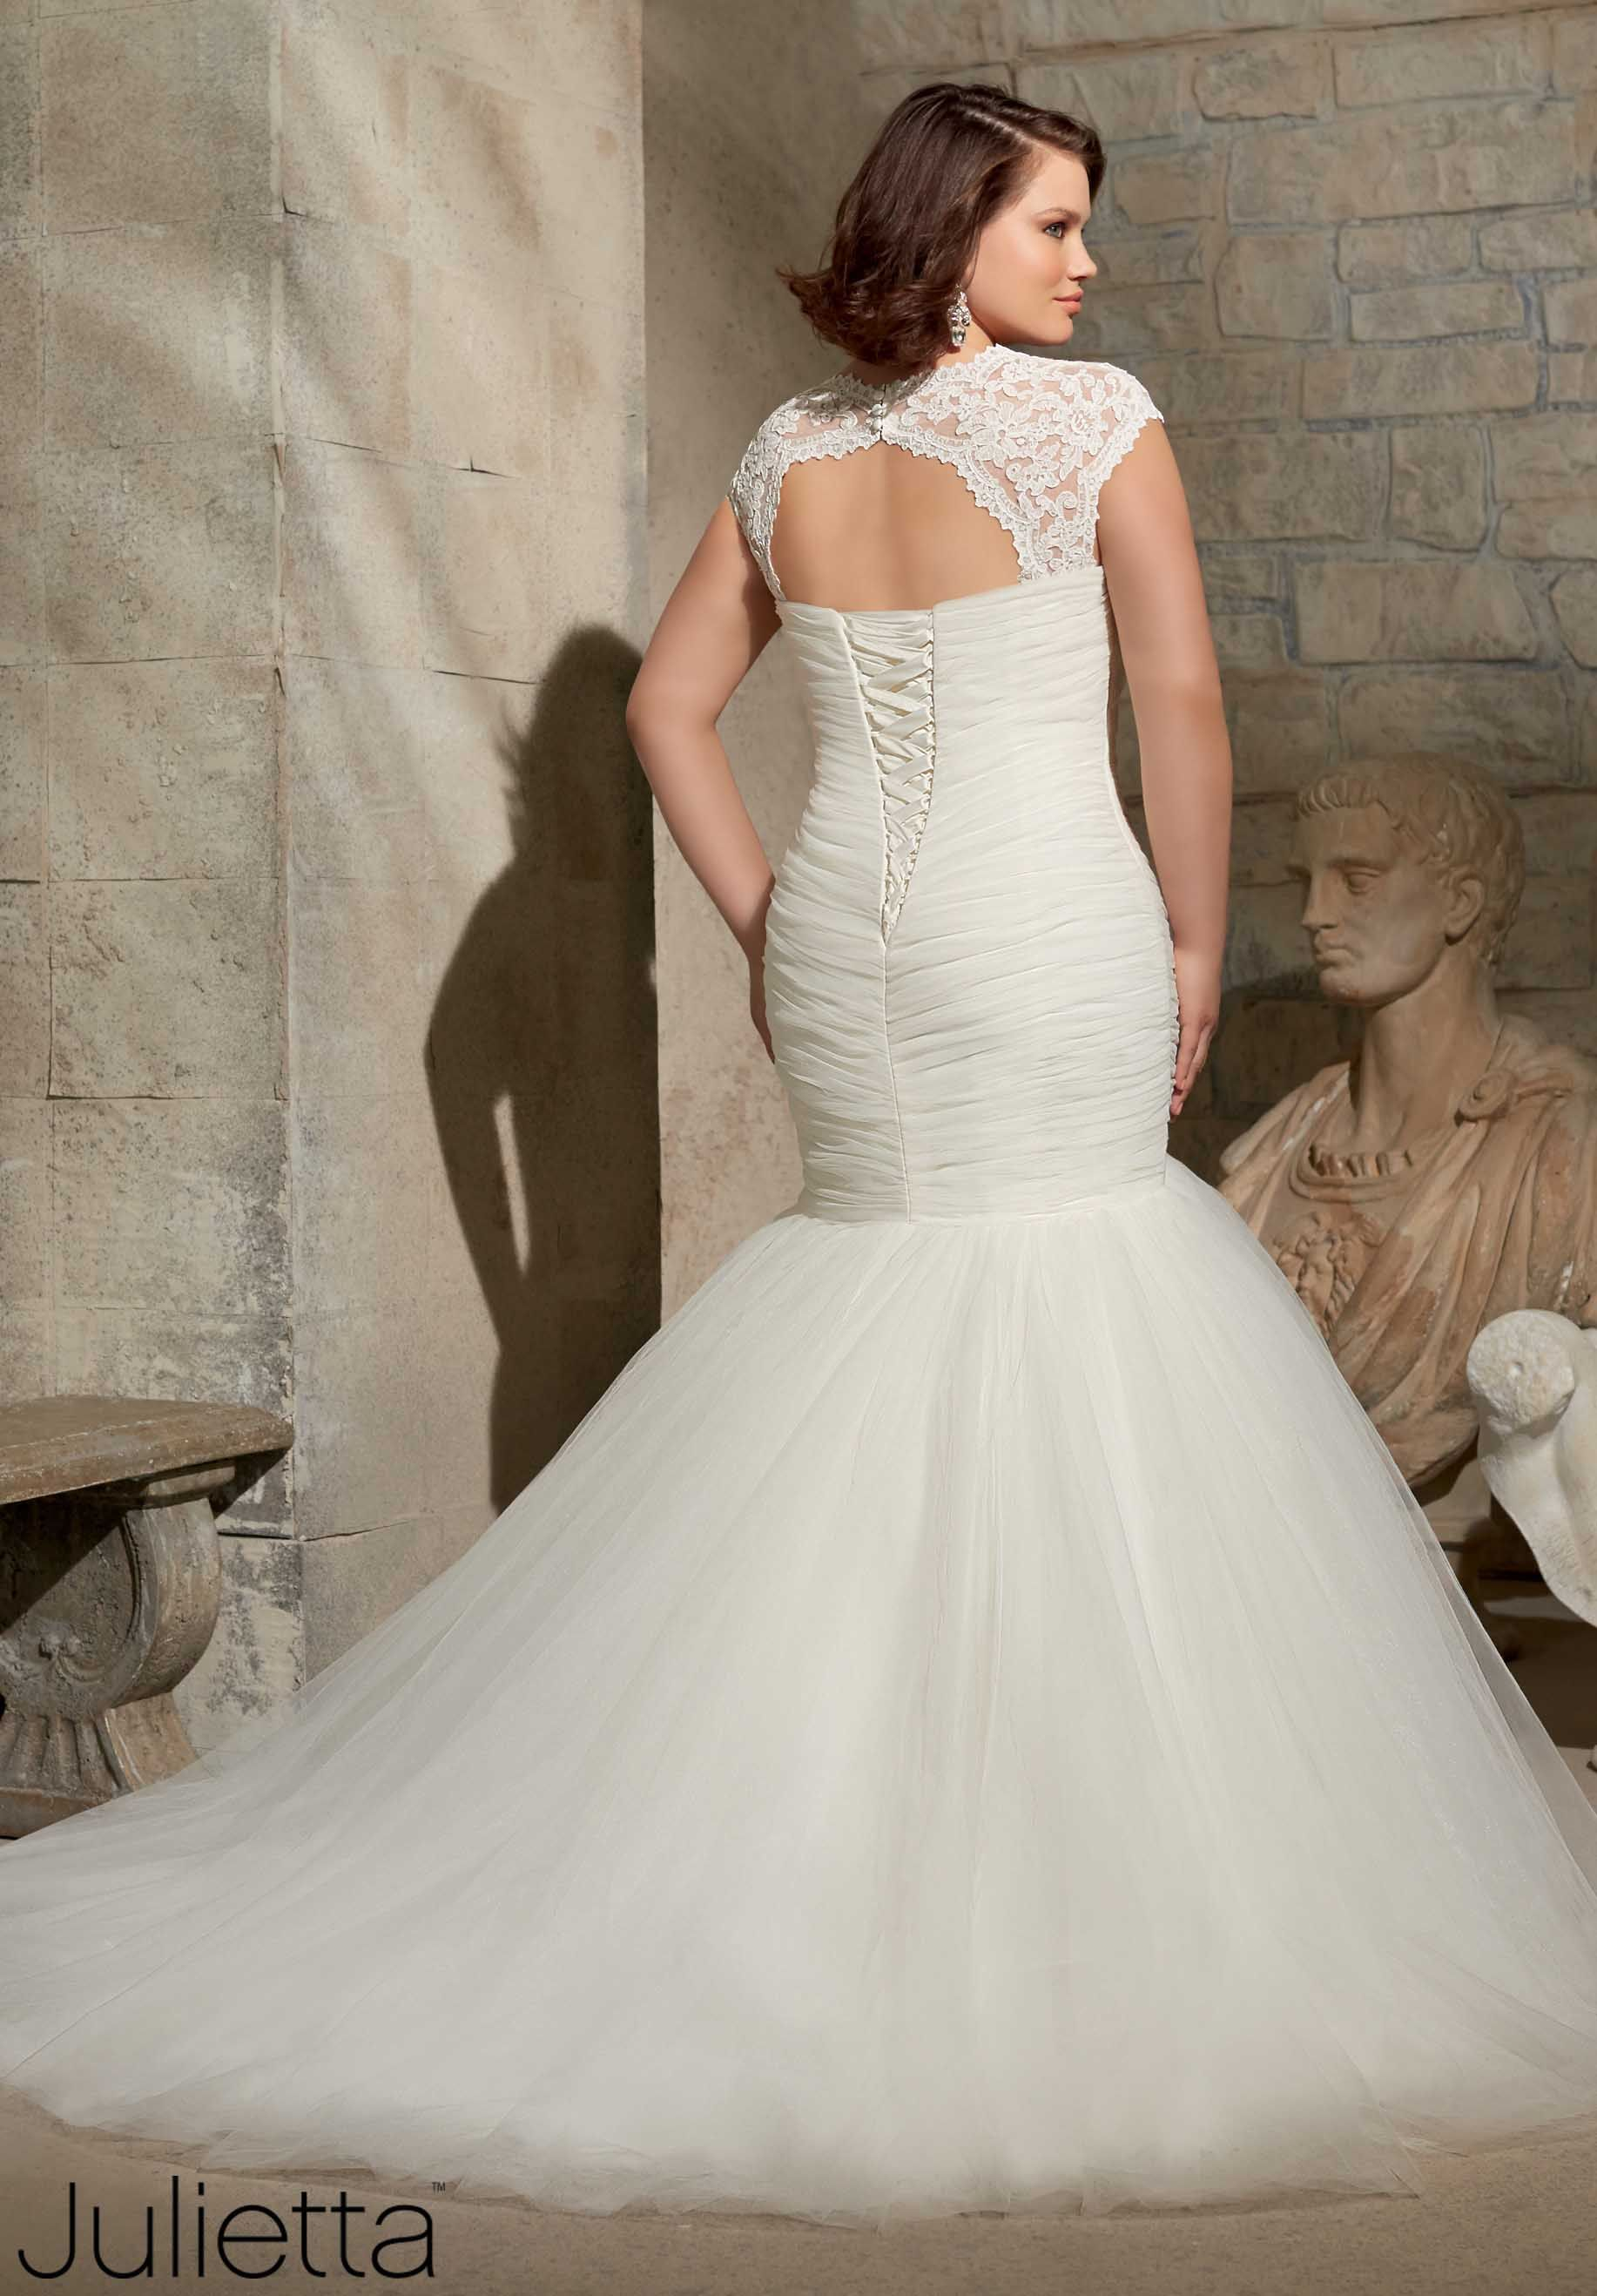 Wedding Gowns / Dresses Style 3176 Soft Net Removable